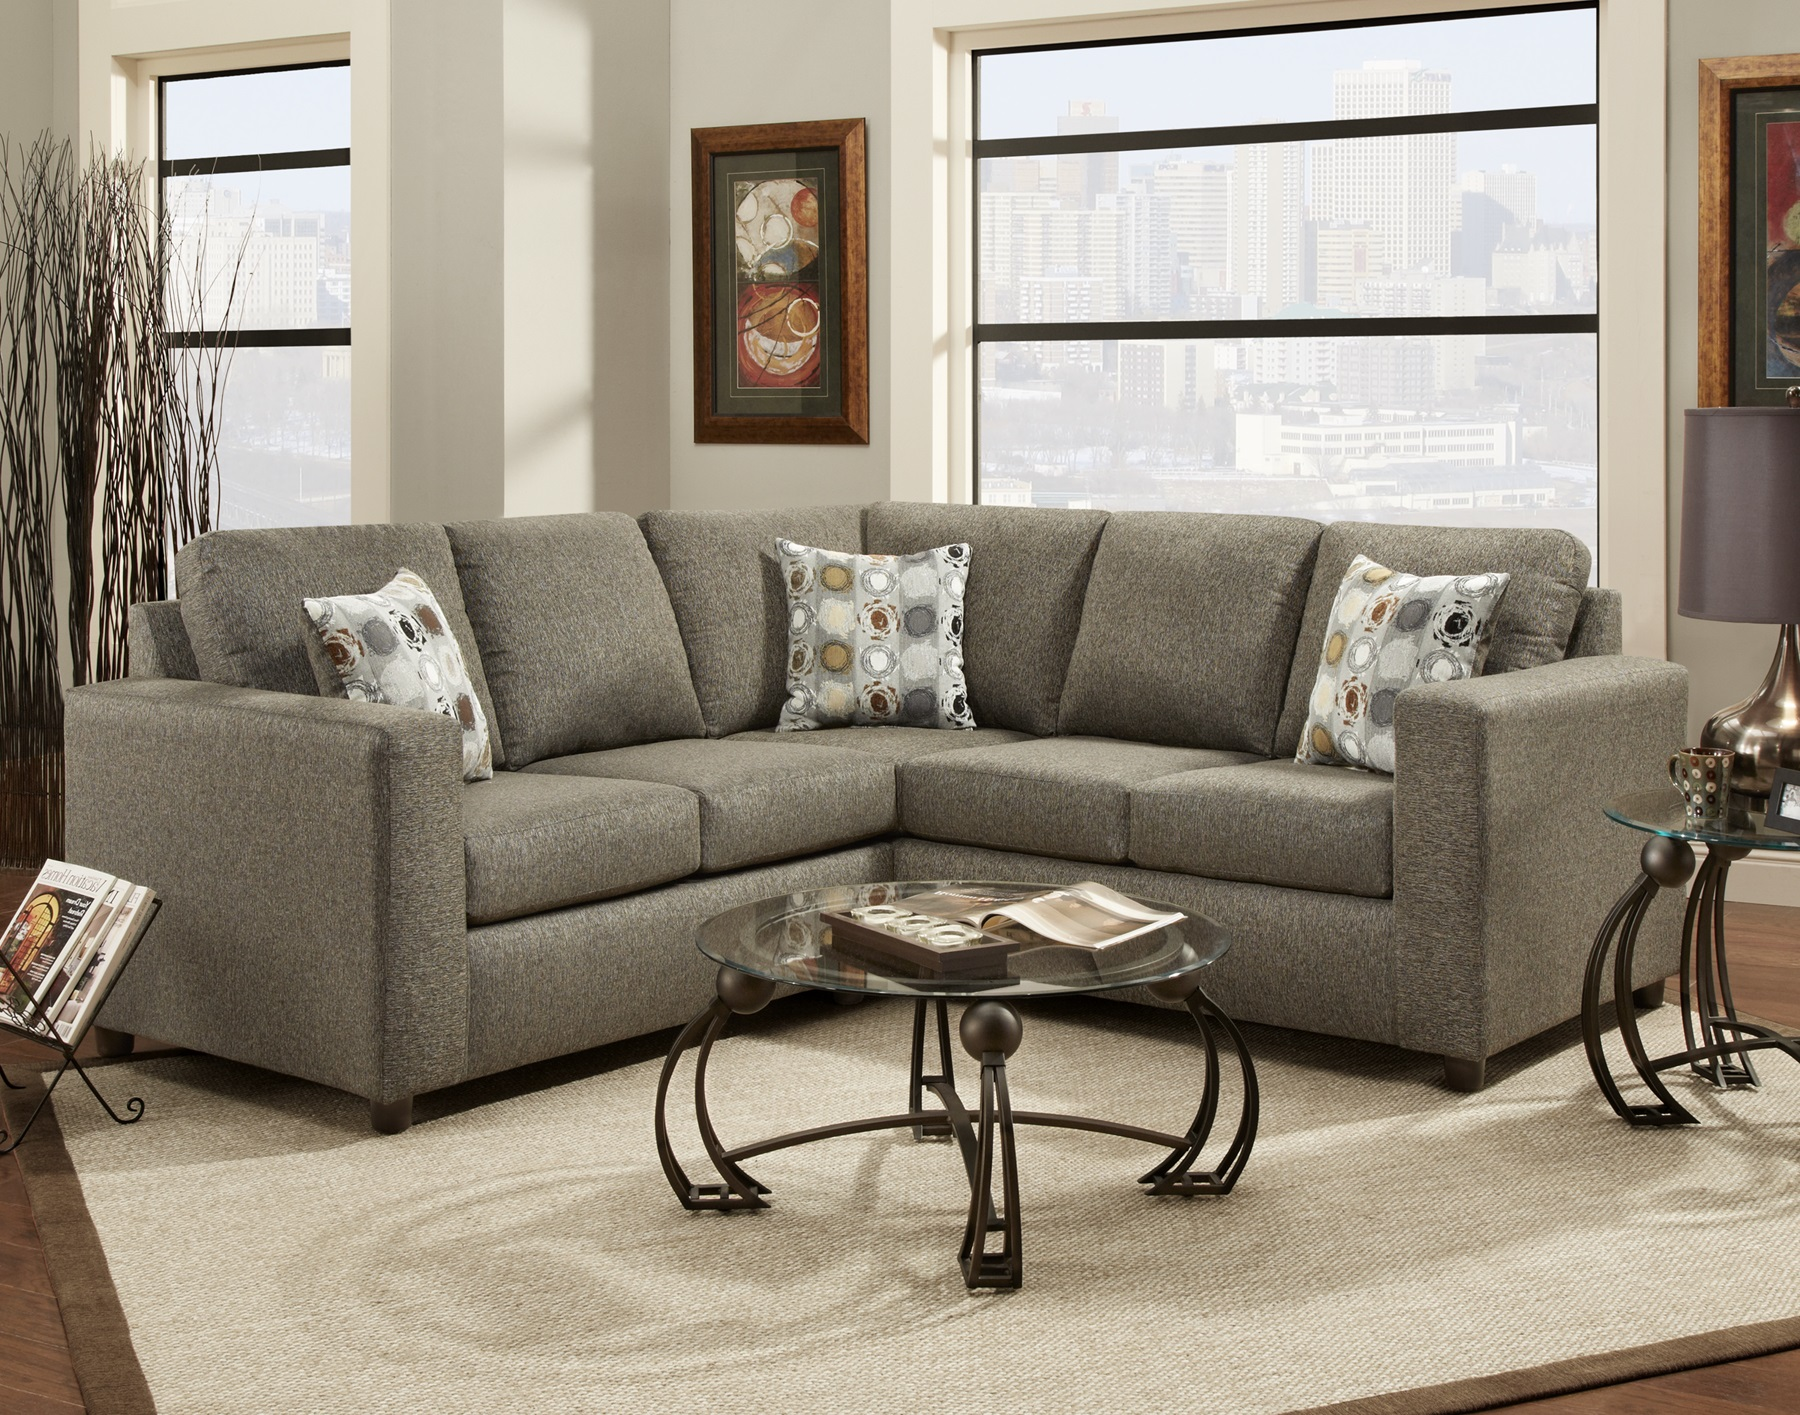 Vivid Onyx fabric Sectional Sofa w/ 3 Pillows , Made In USA